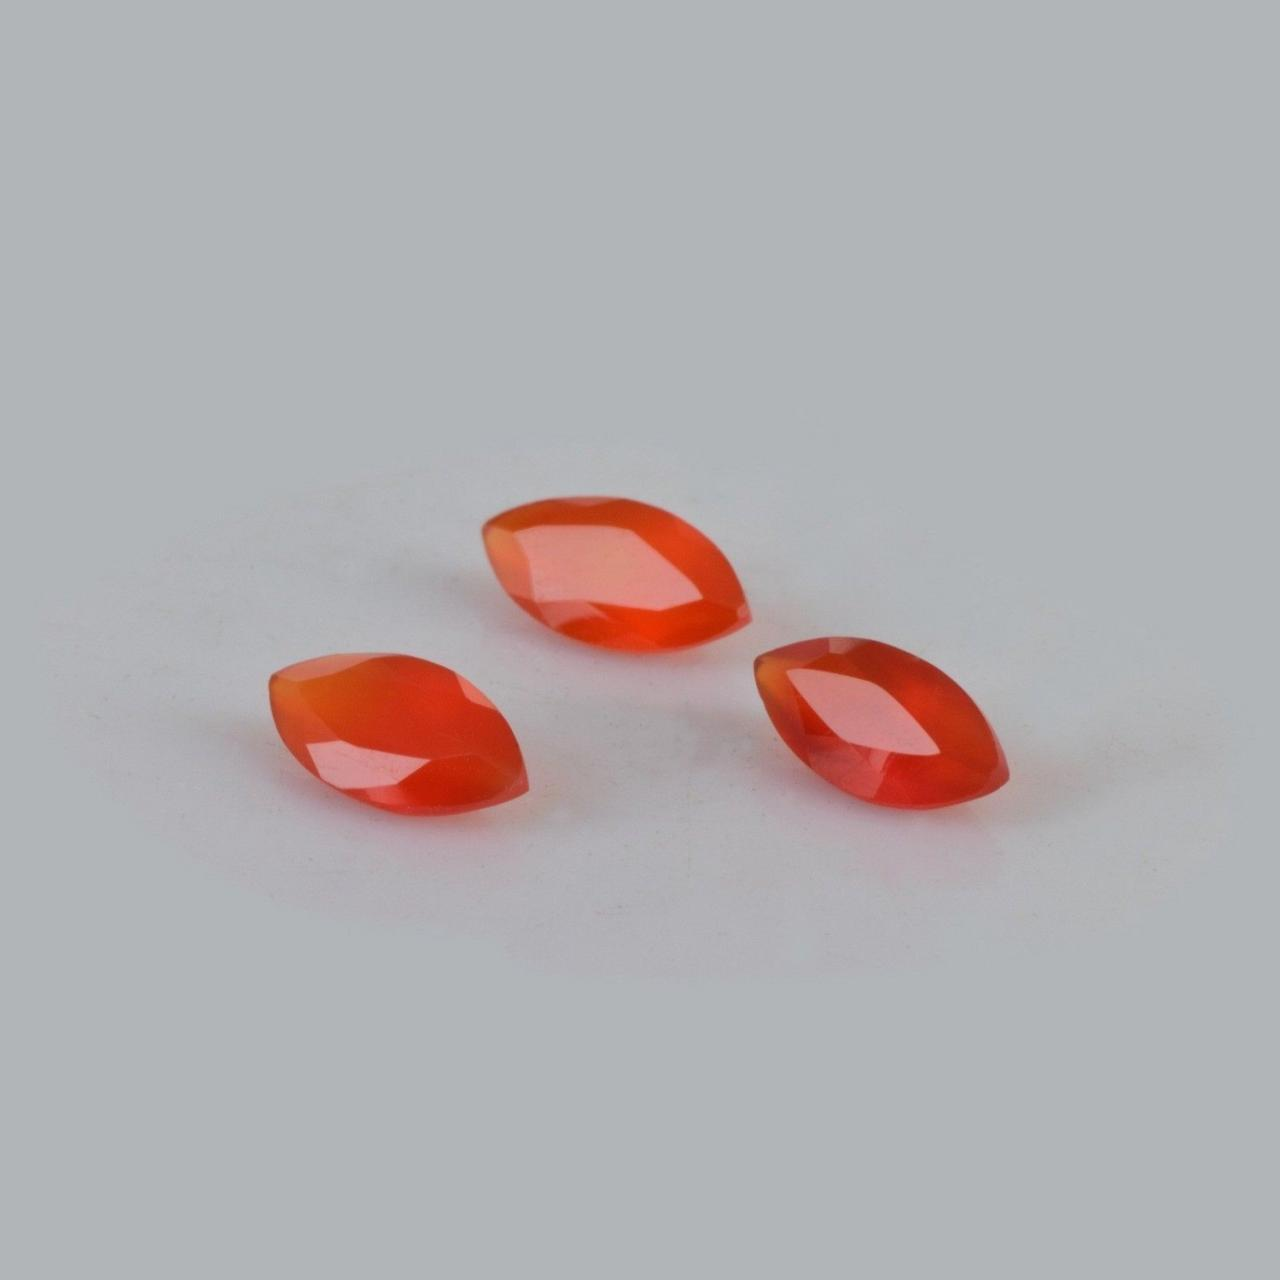 Natural Carnelian 12x6mm Faceted Cut Marquise 2 Pieces Lot Orange Color - Natural Loose Gemstone